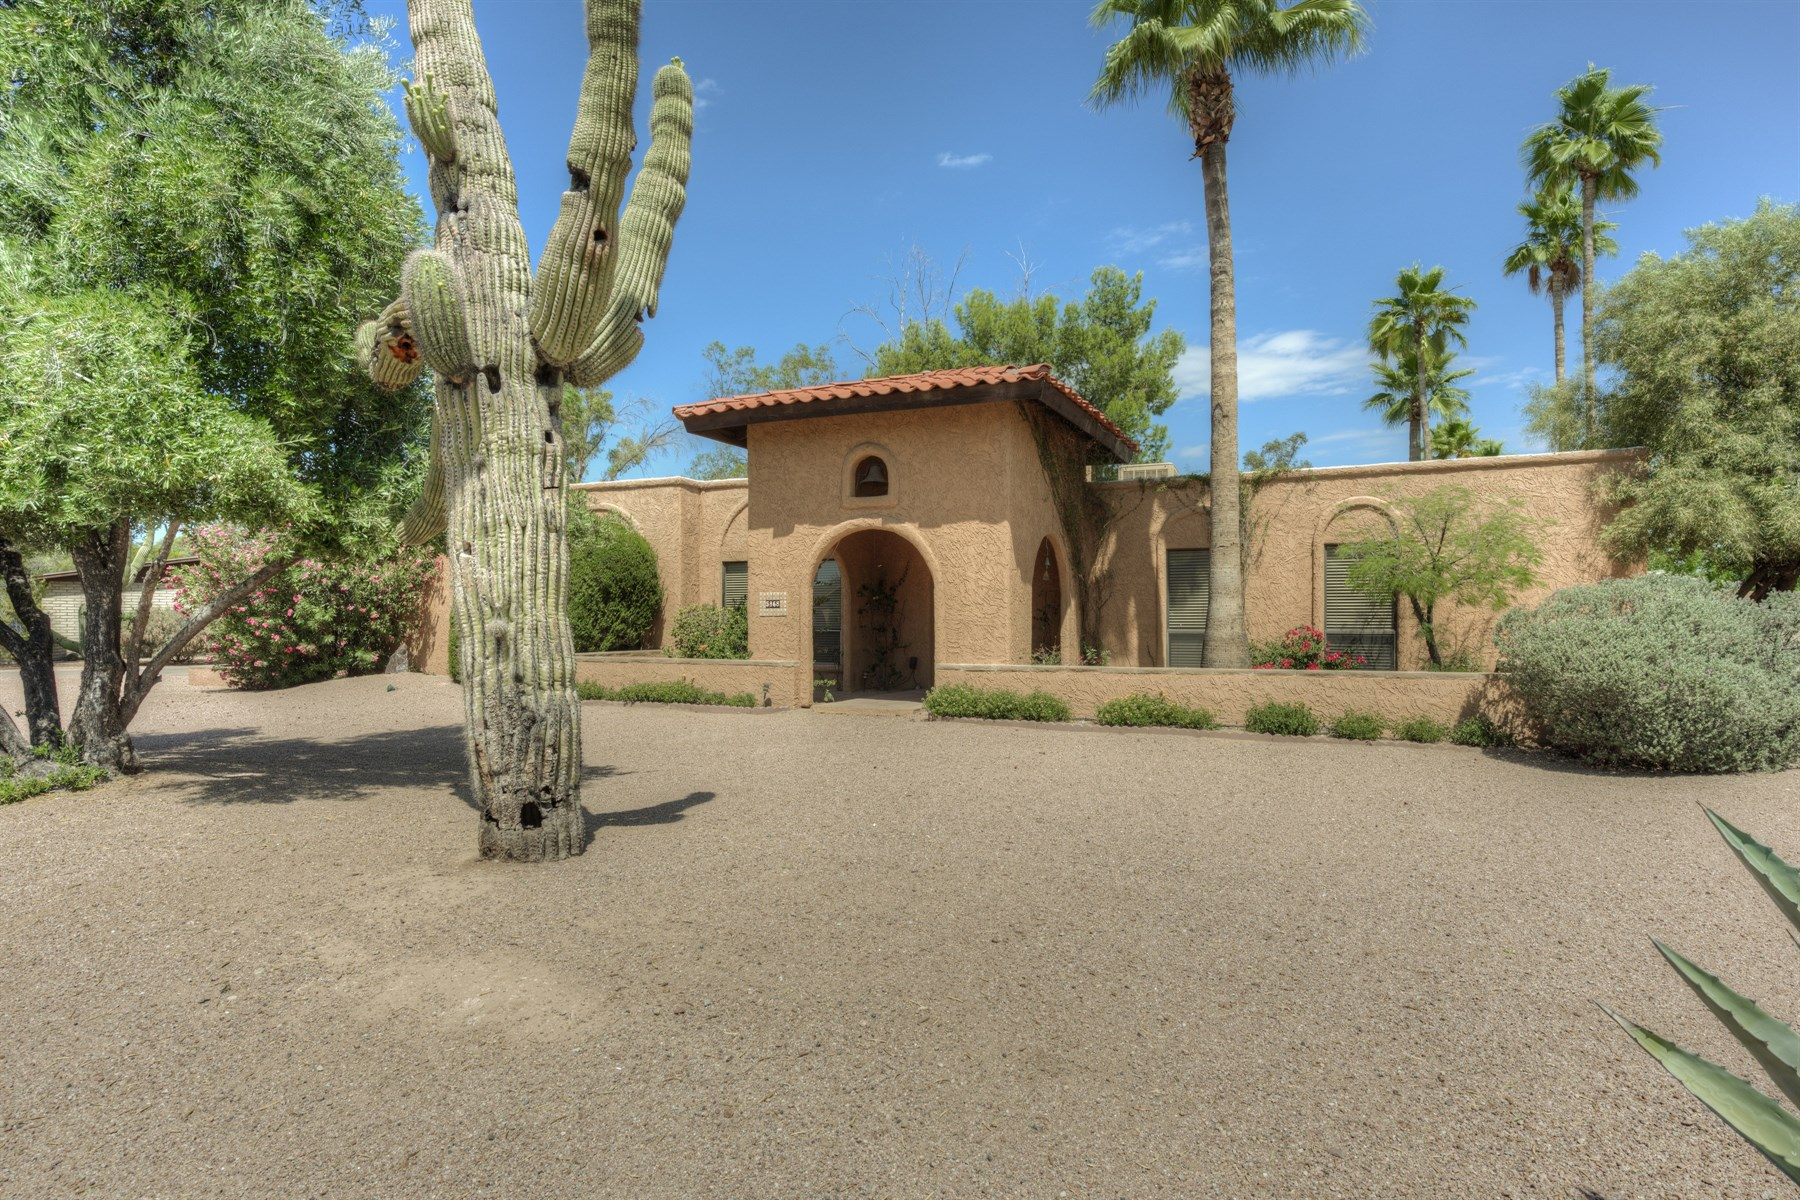 Casa Unifamiliar por un Venta en Charming large interior lot in Country Estates 5868 E Onyx Ave Paradise Valley, Arizona, 85253 Estados Unidos